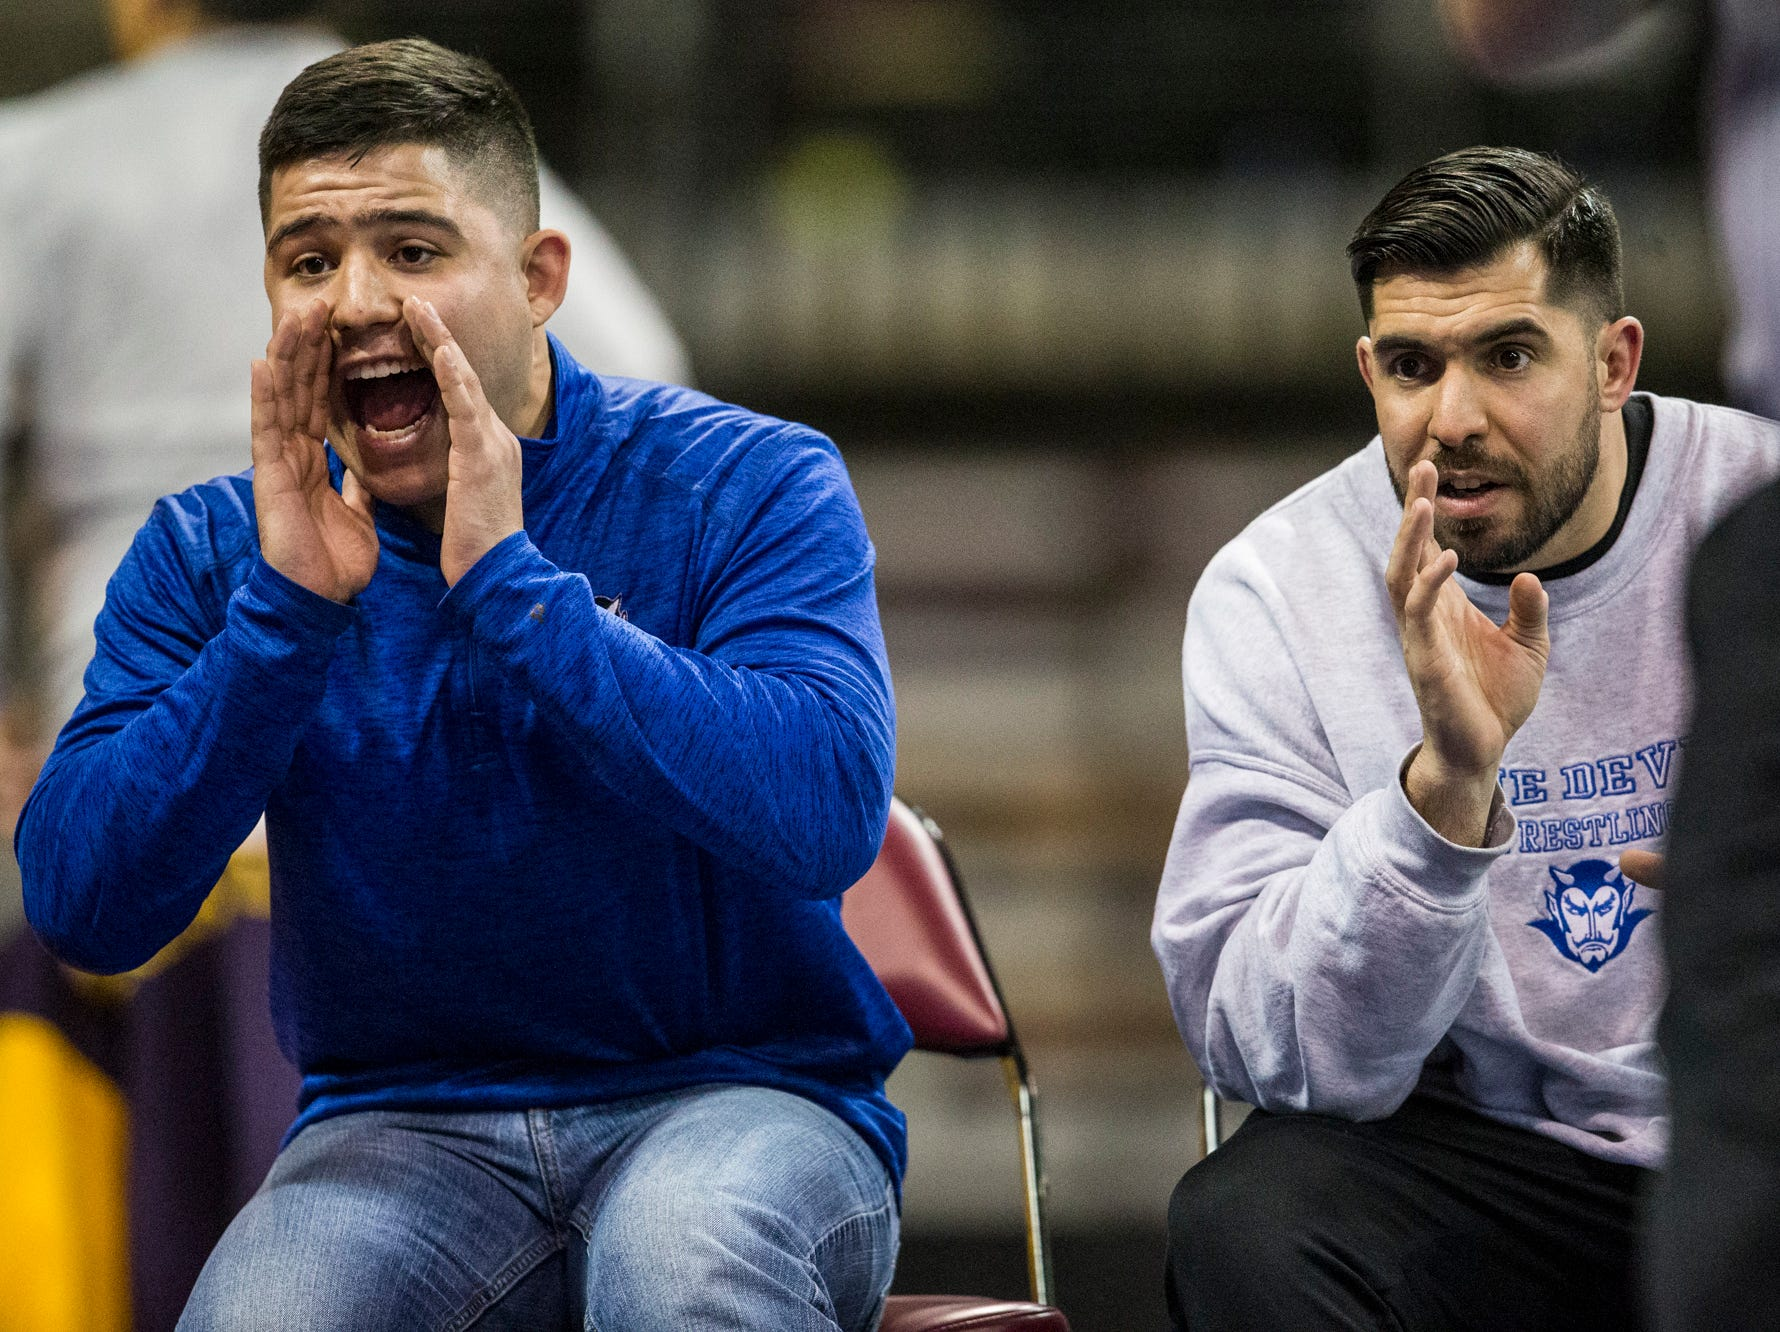 Sunnyside coach Juaquin Olivas (left) and head coach Anthony Leon yell as Rico Robles wrestles during the boys wrestling championship on Friday, Feb. 8, 2019, at Prescott Valley Event Center in Prescott Valley, Ariz.